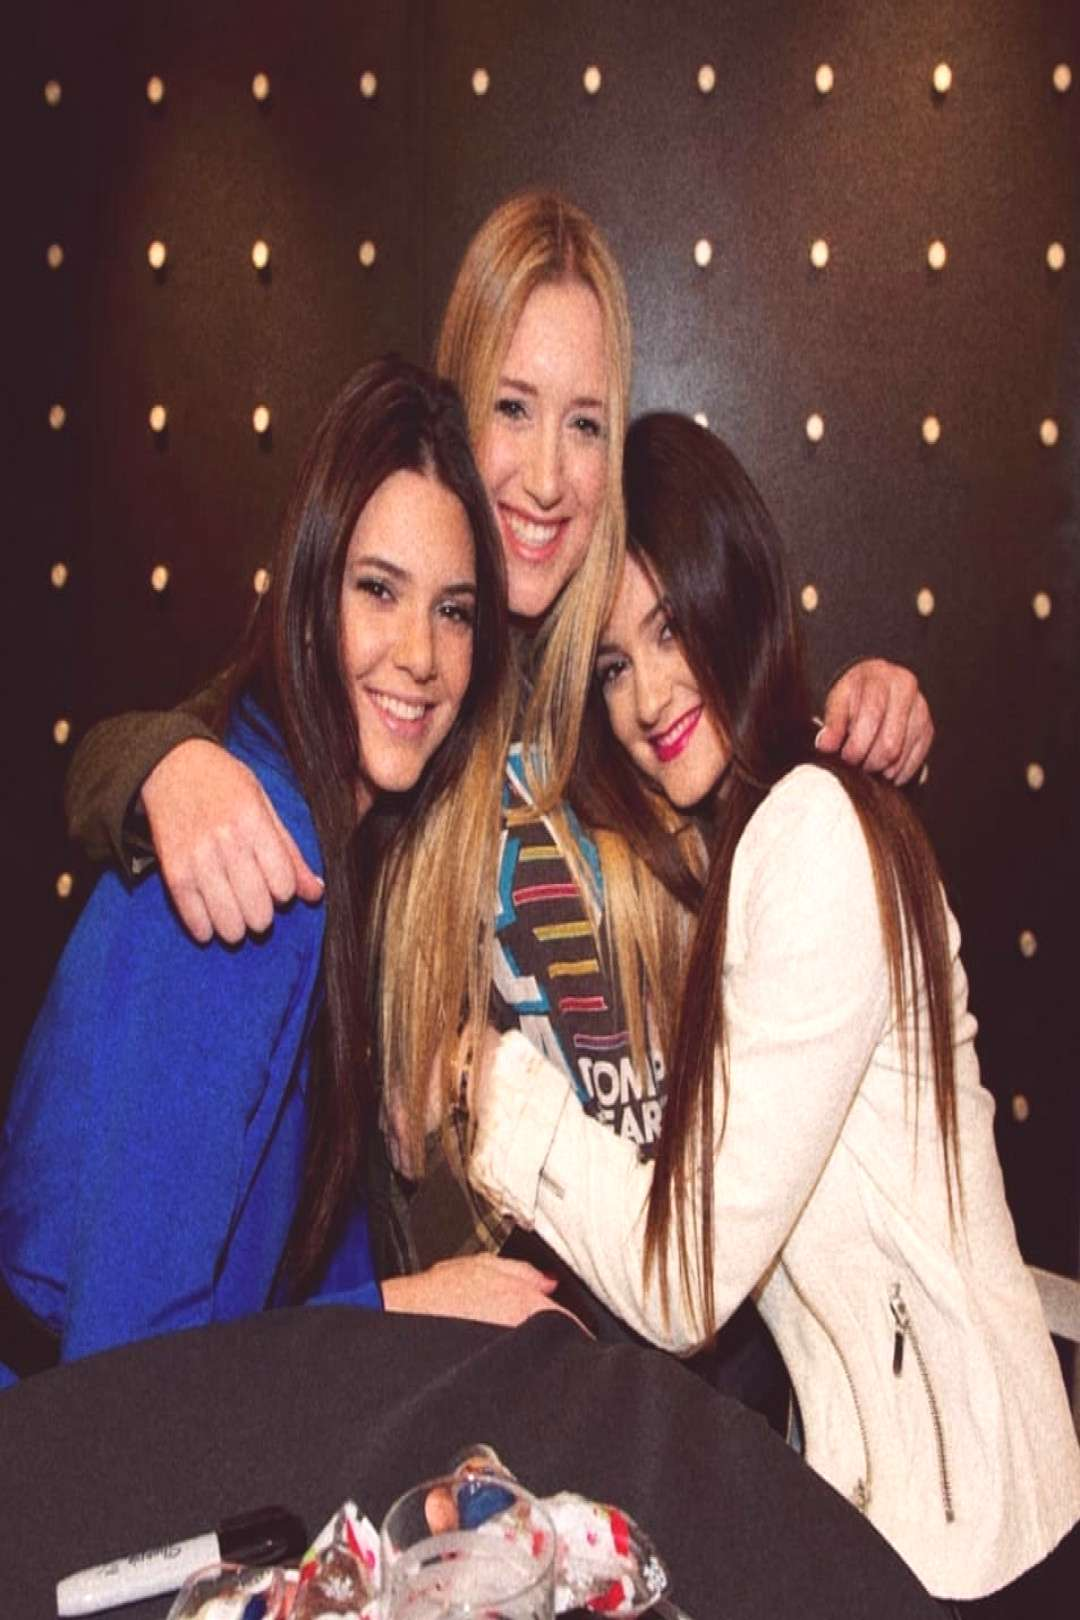 Kendall and Kylie on June 09 2020 and 3 people people smiling nig